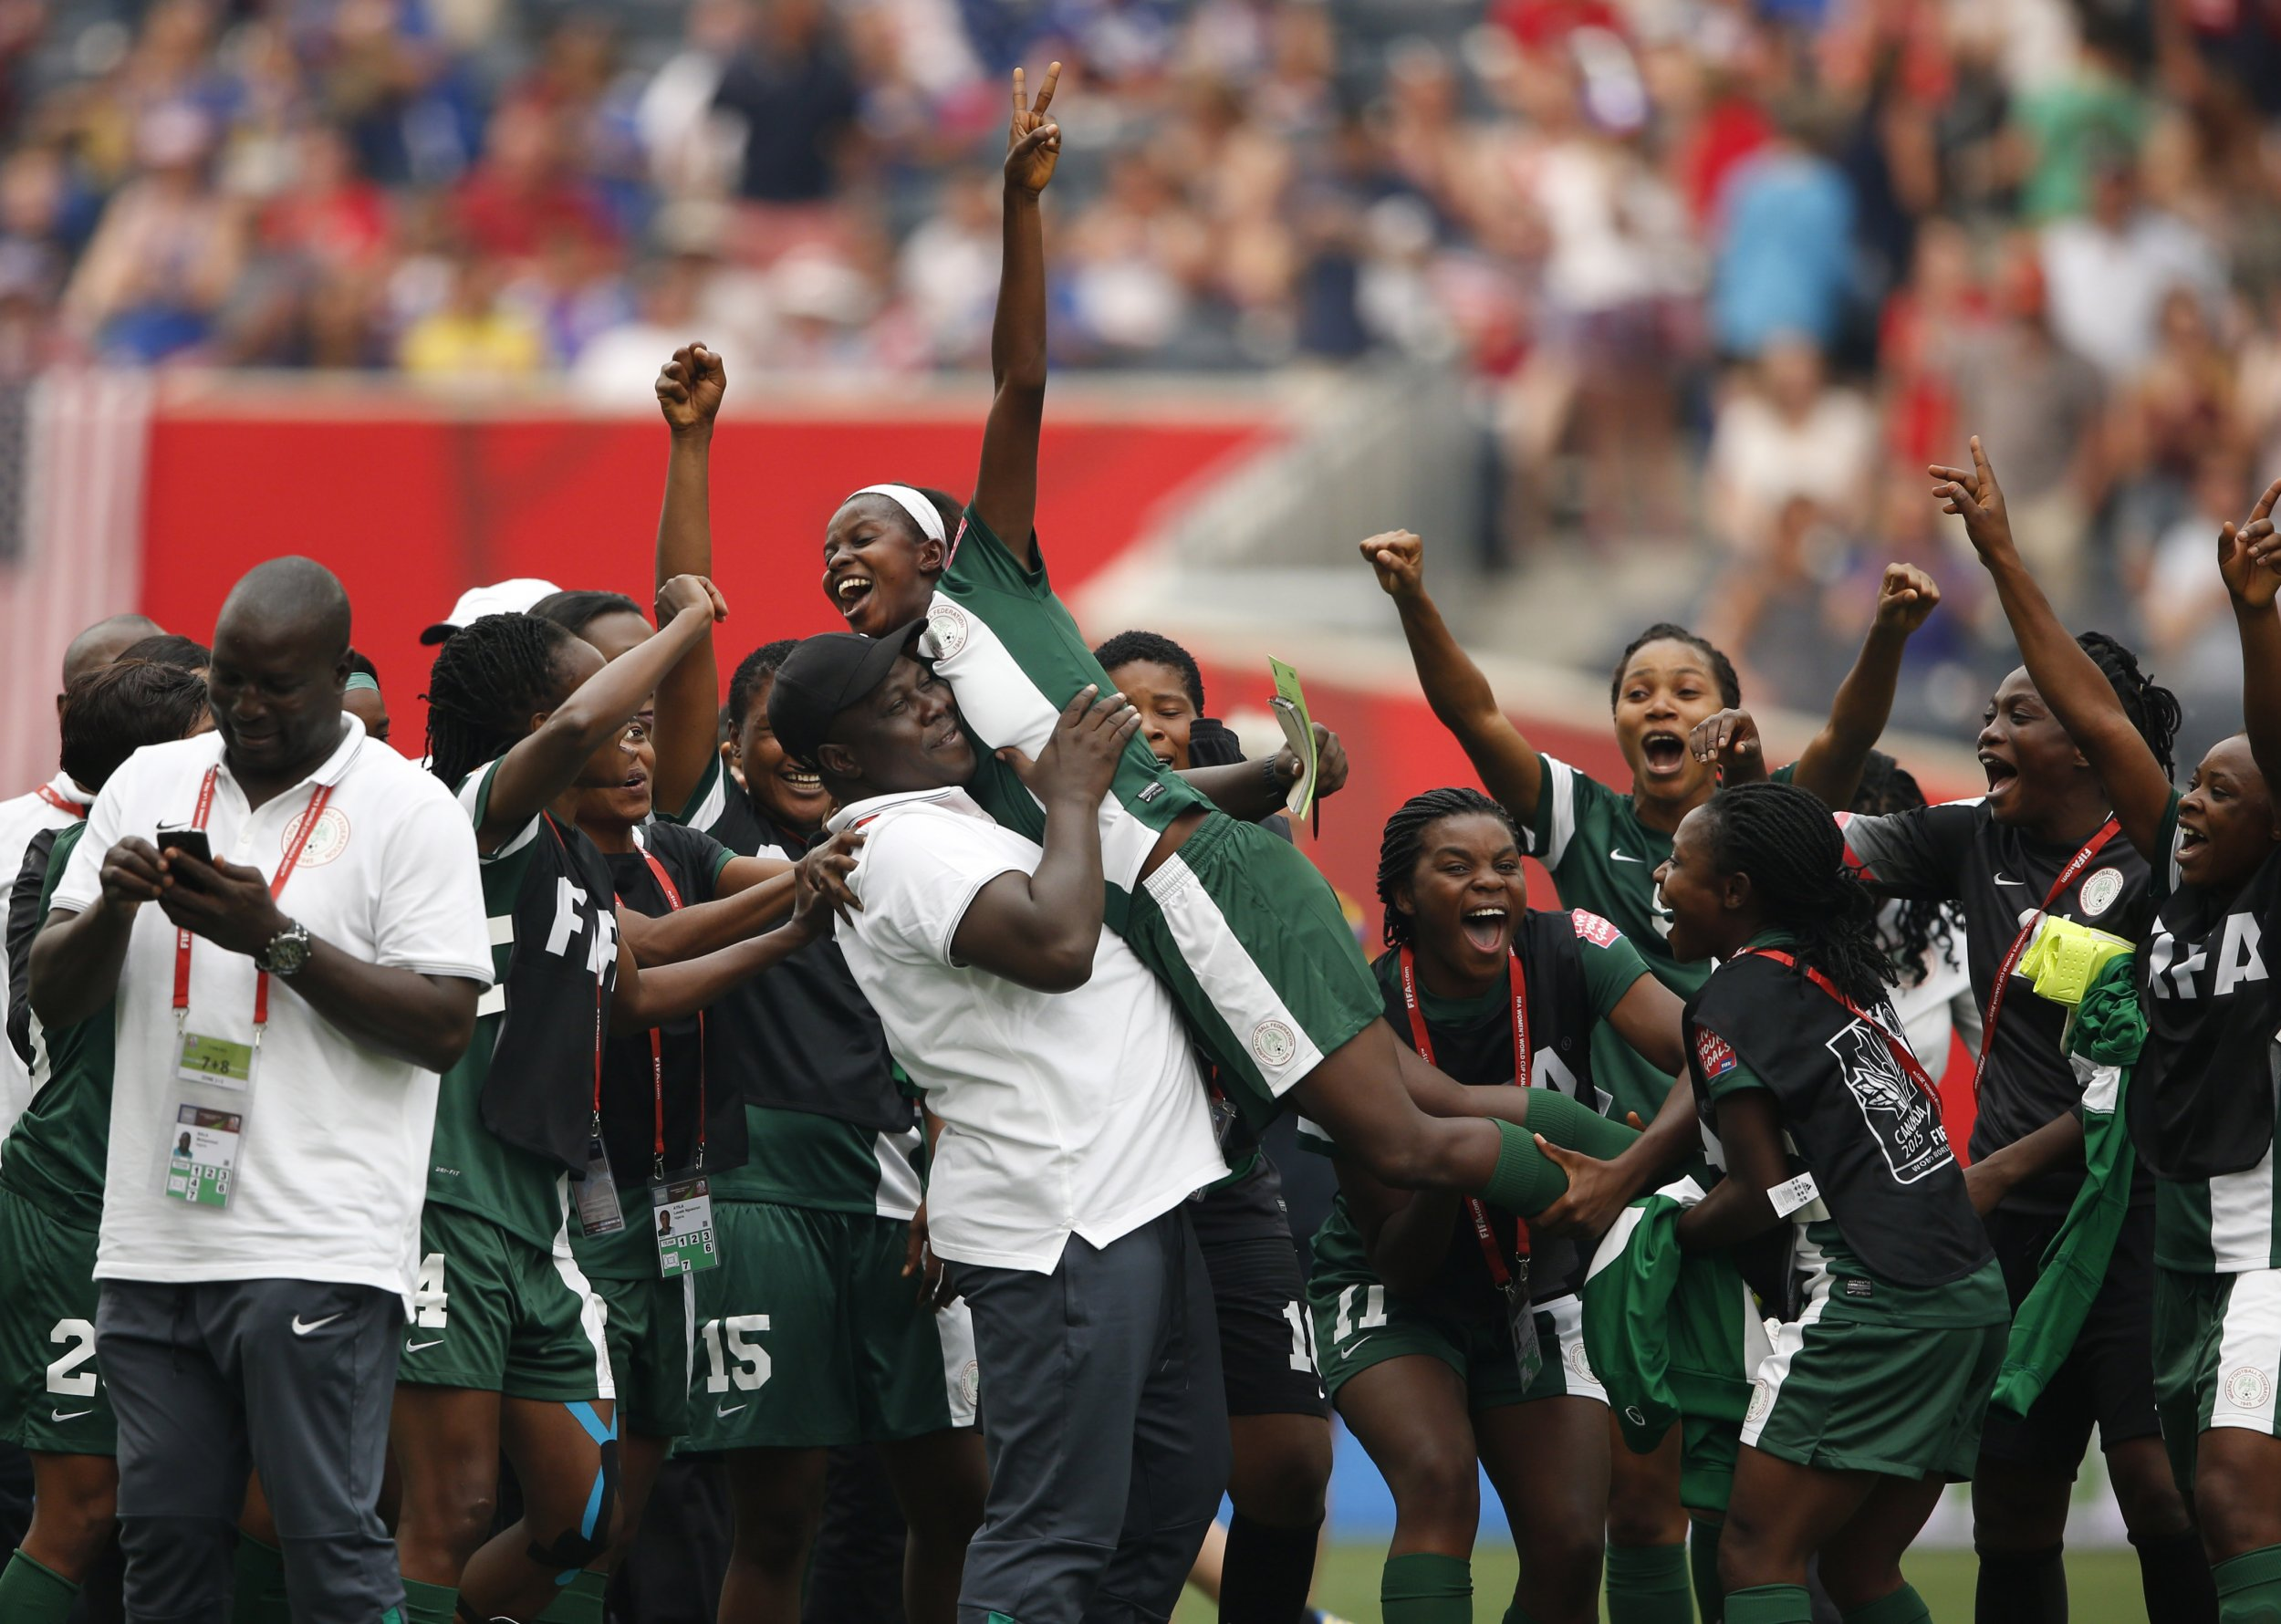 Nigeria women's football team